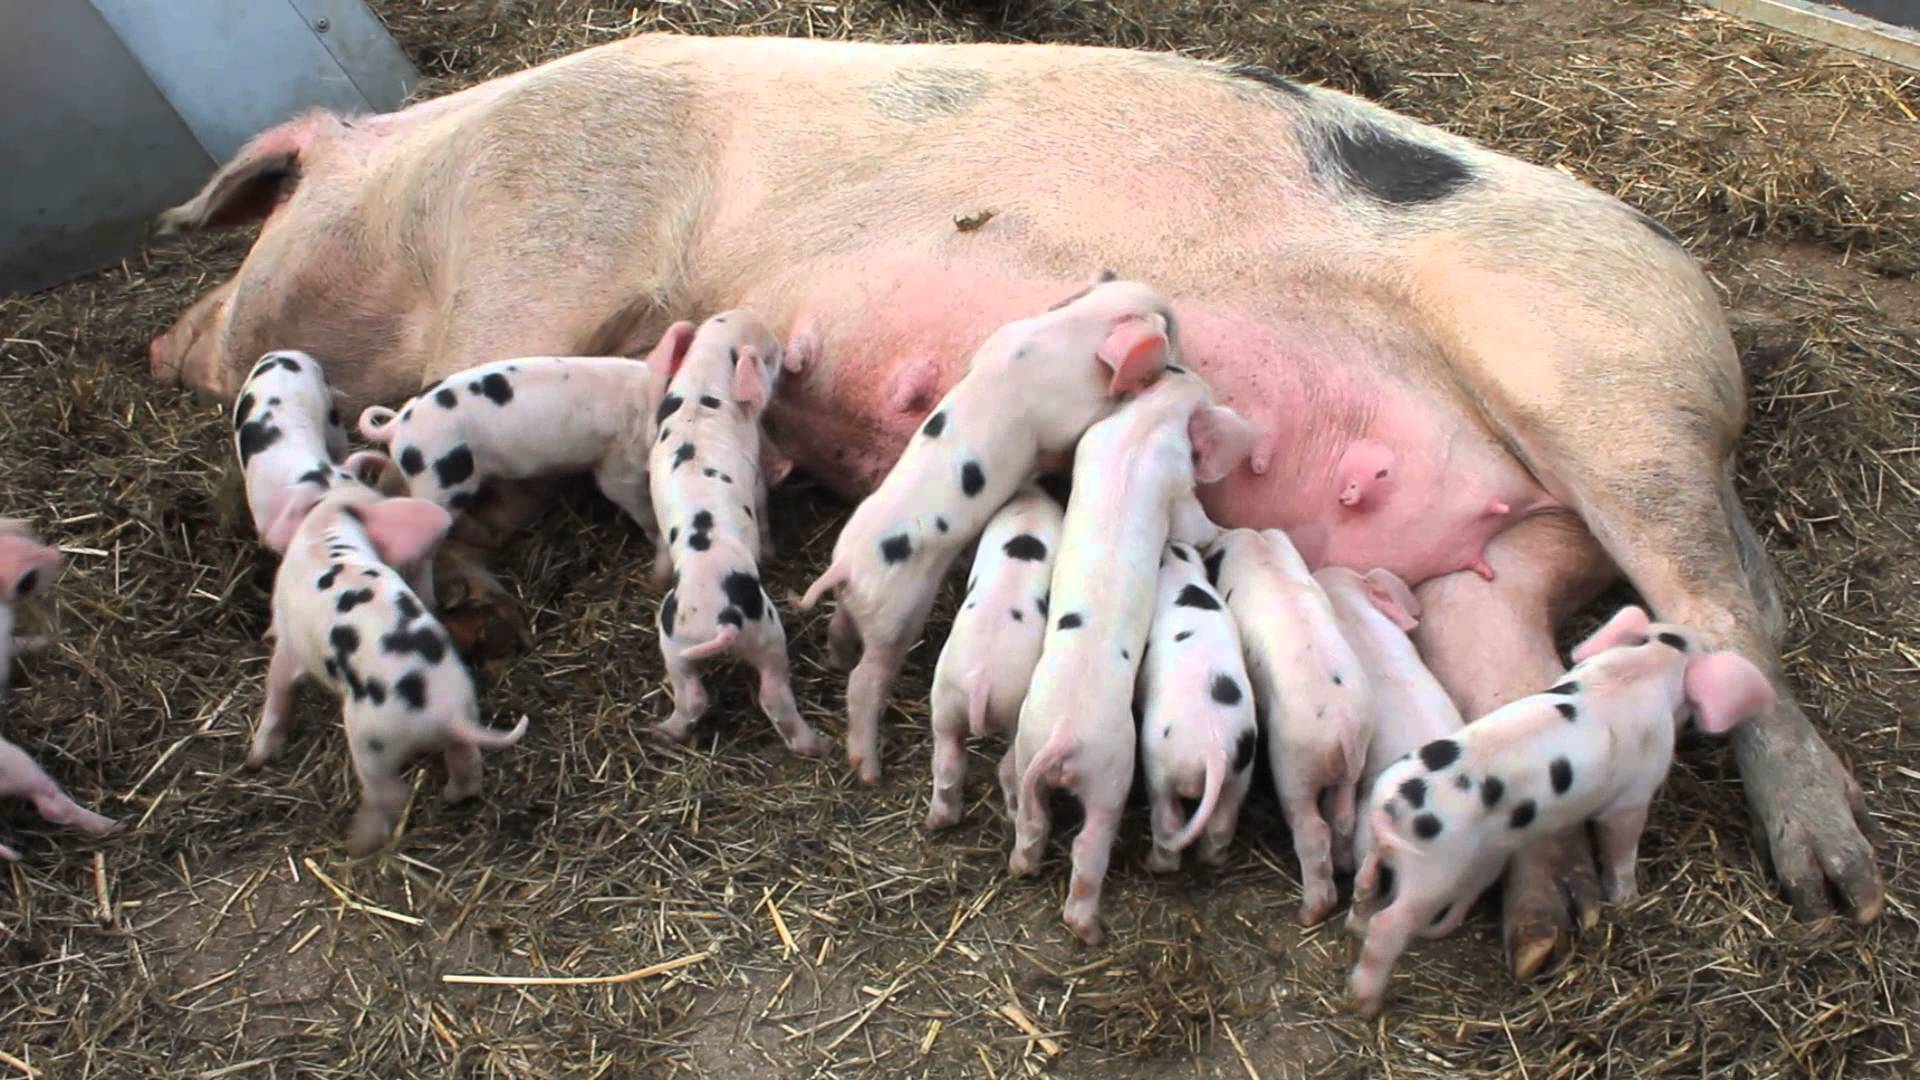 Piglets Feeding Time - YouTube